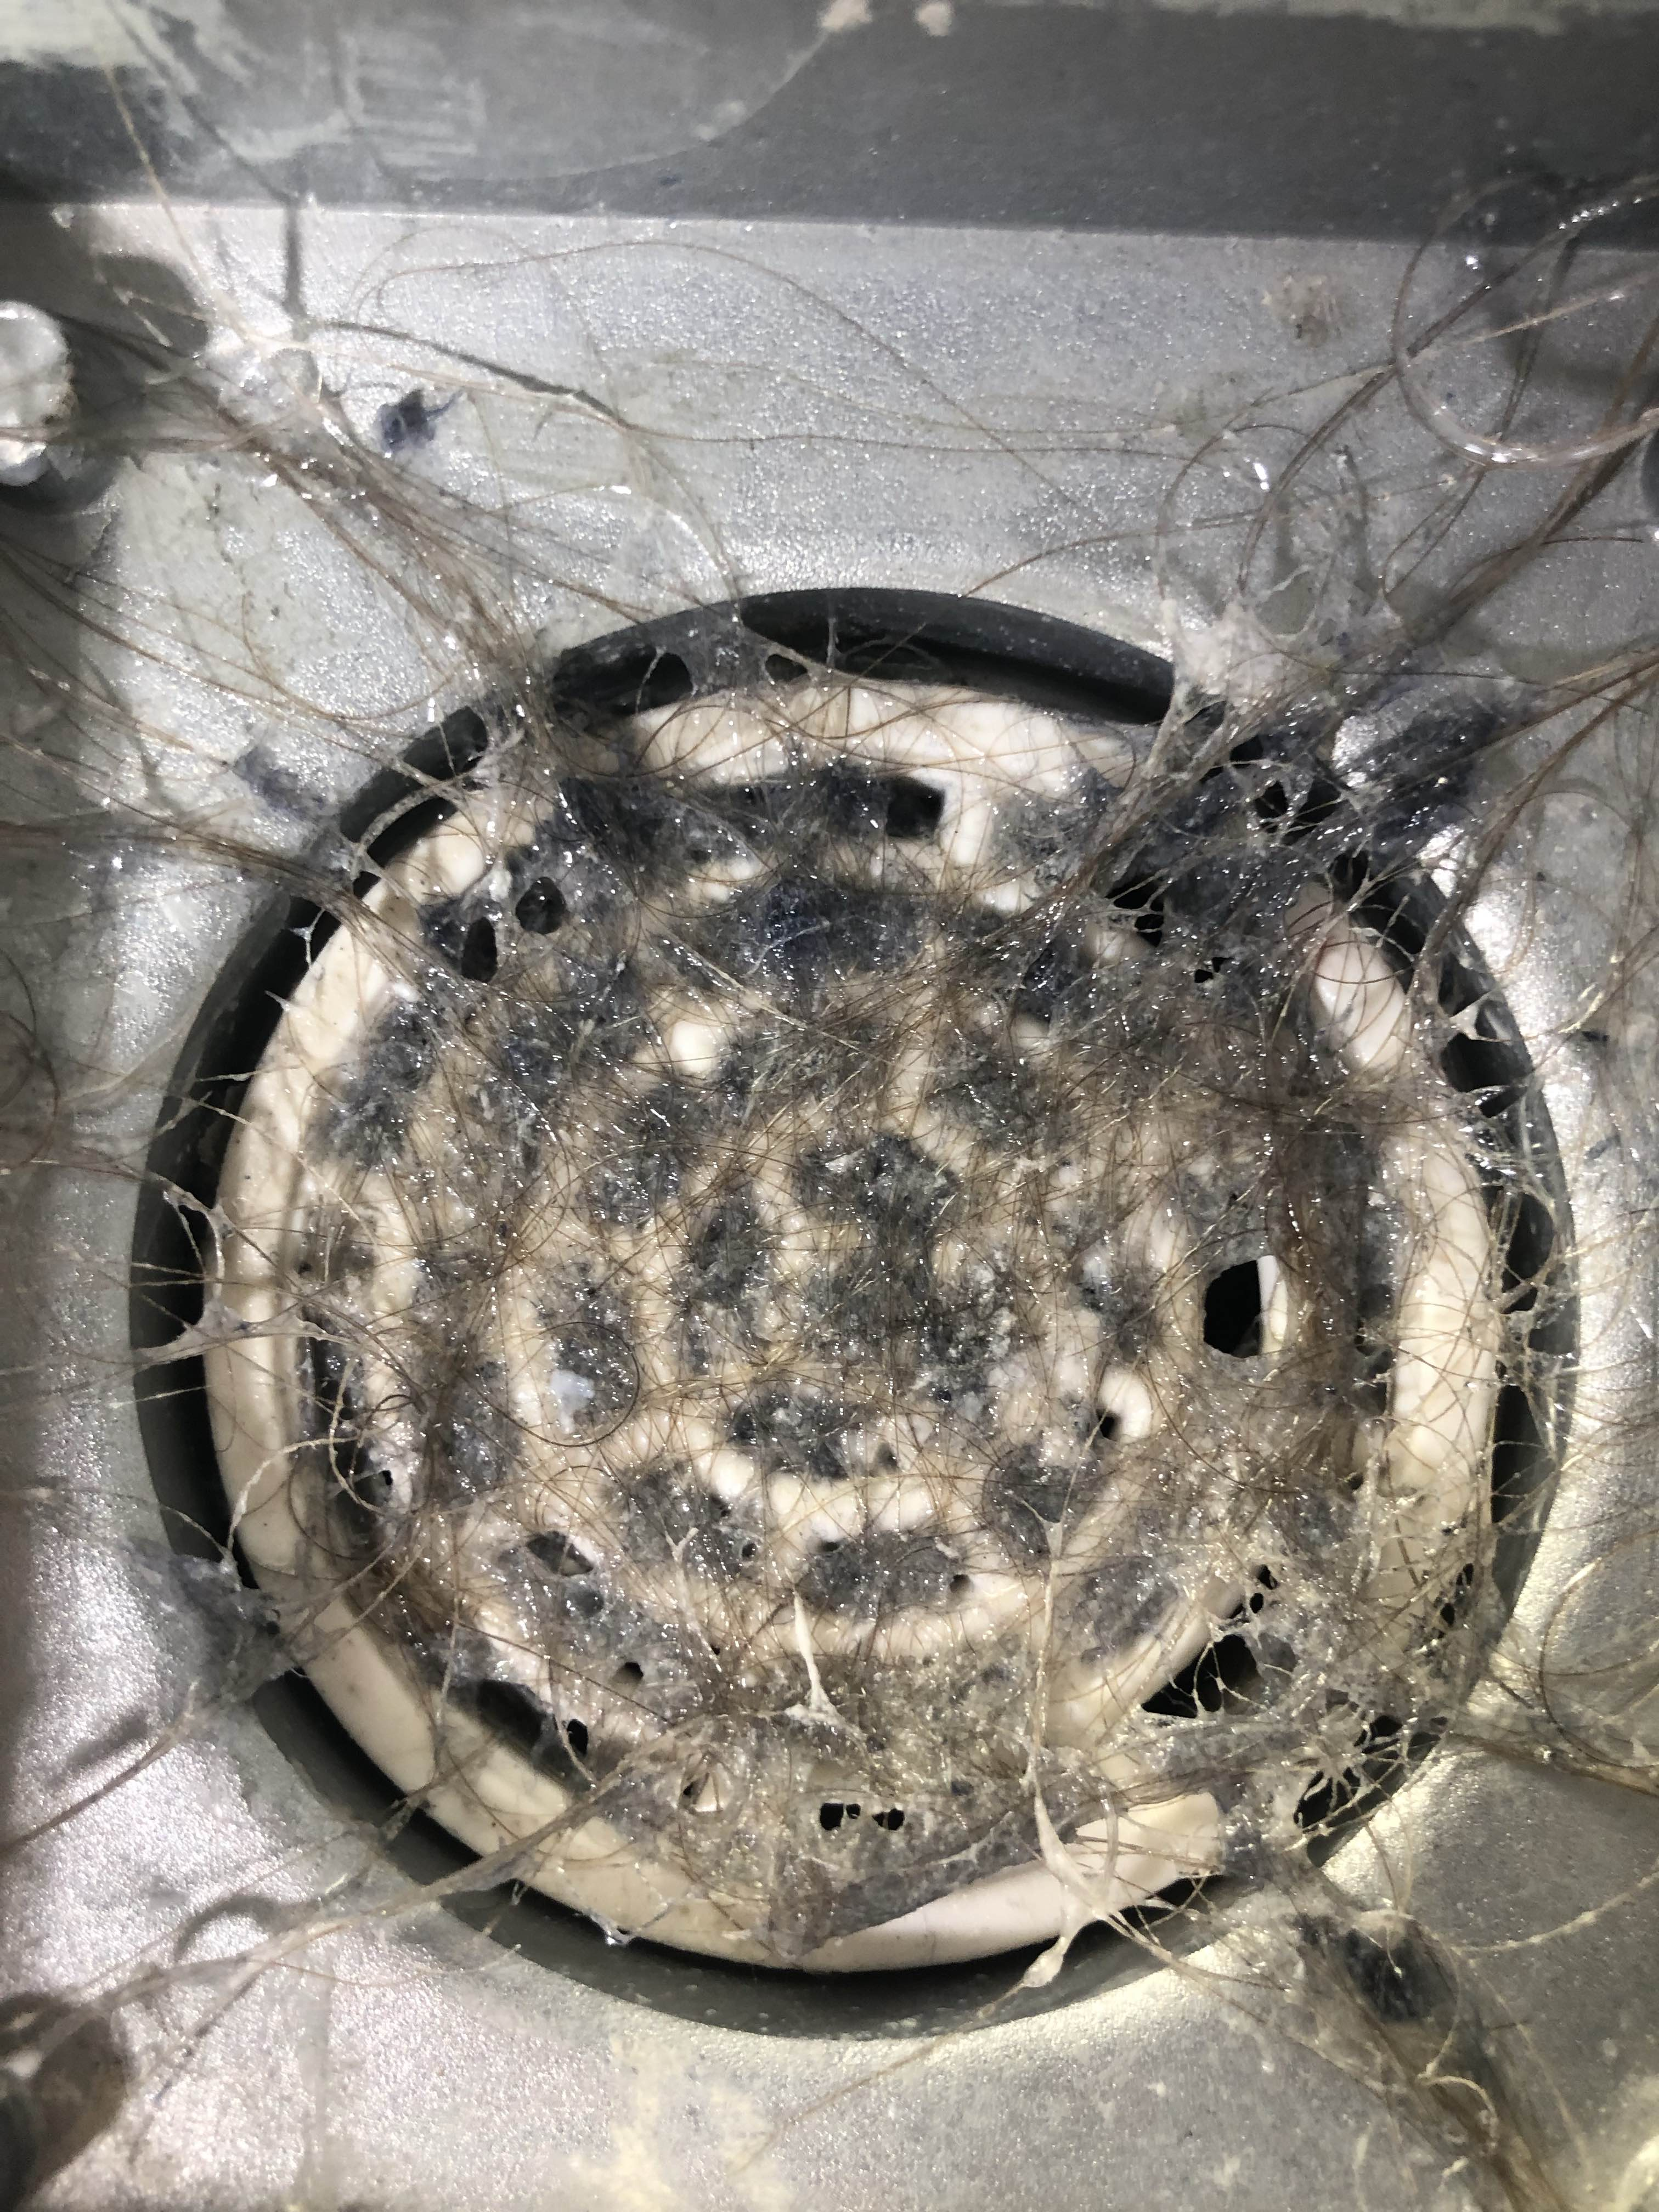 Blocked Drains and Sewer Repair Services at Glenroy Melbourne VIC By P.A.D Plumbing & Maintenance Pty Ltd via i4Tradies